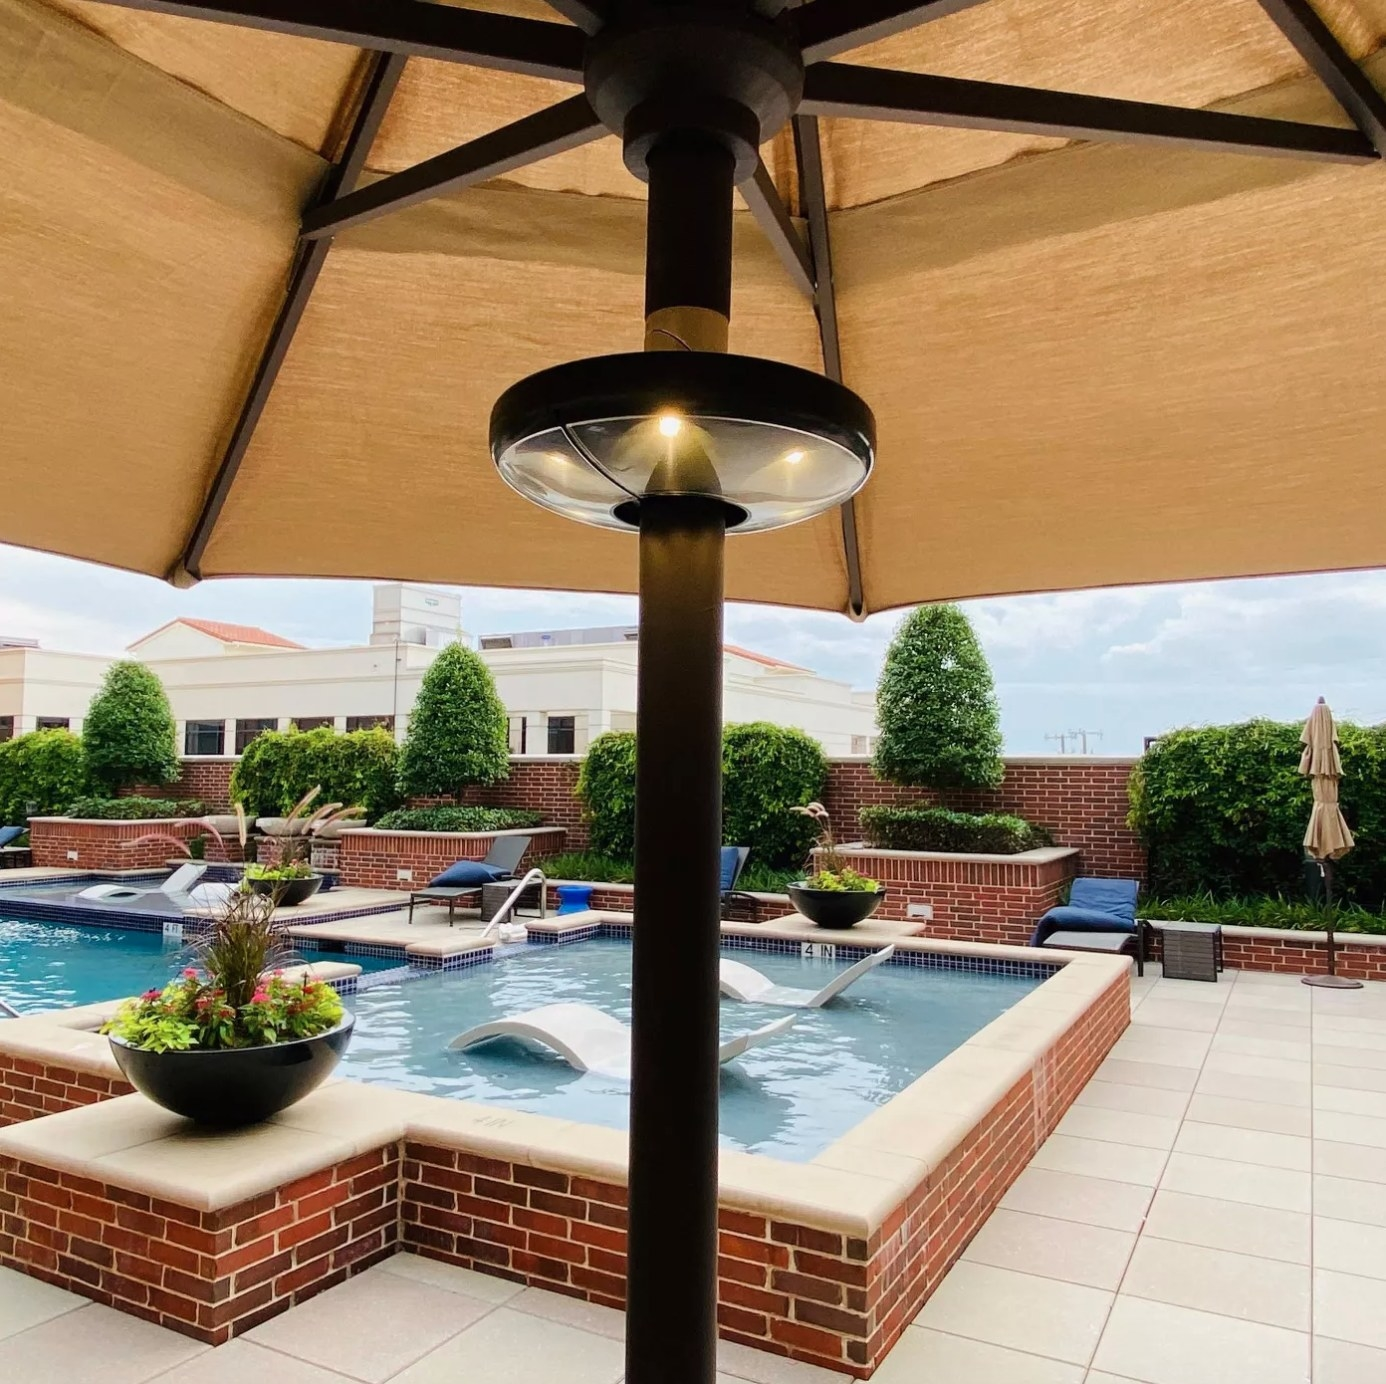 The LED patio umbrella light in black and clear